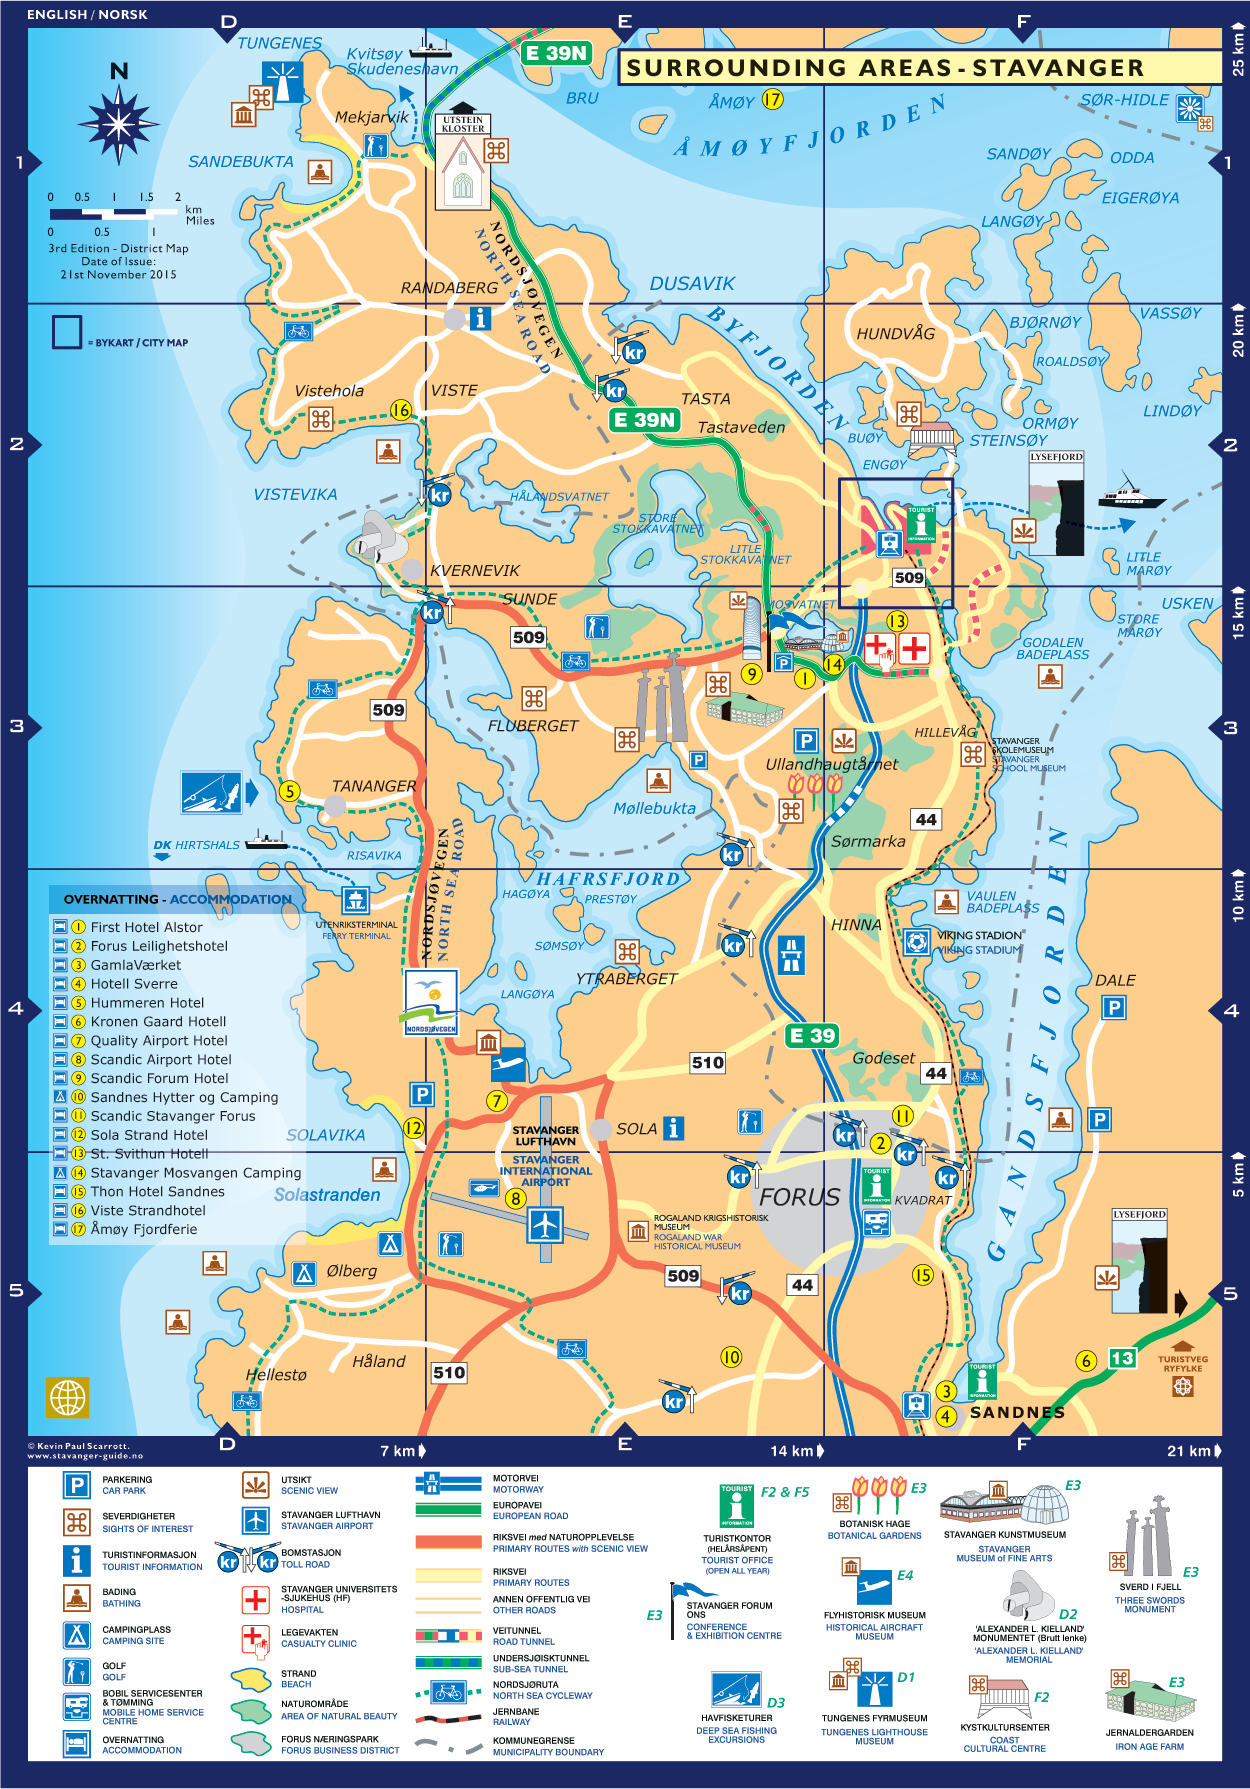 Stavanger Guide Maps Stavanger City Map Norway English - Norway map picture